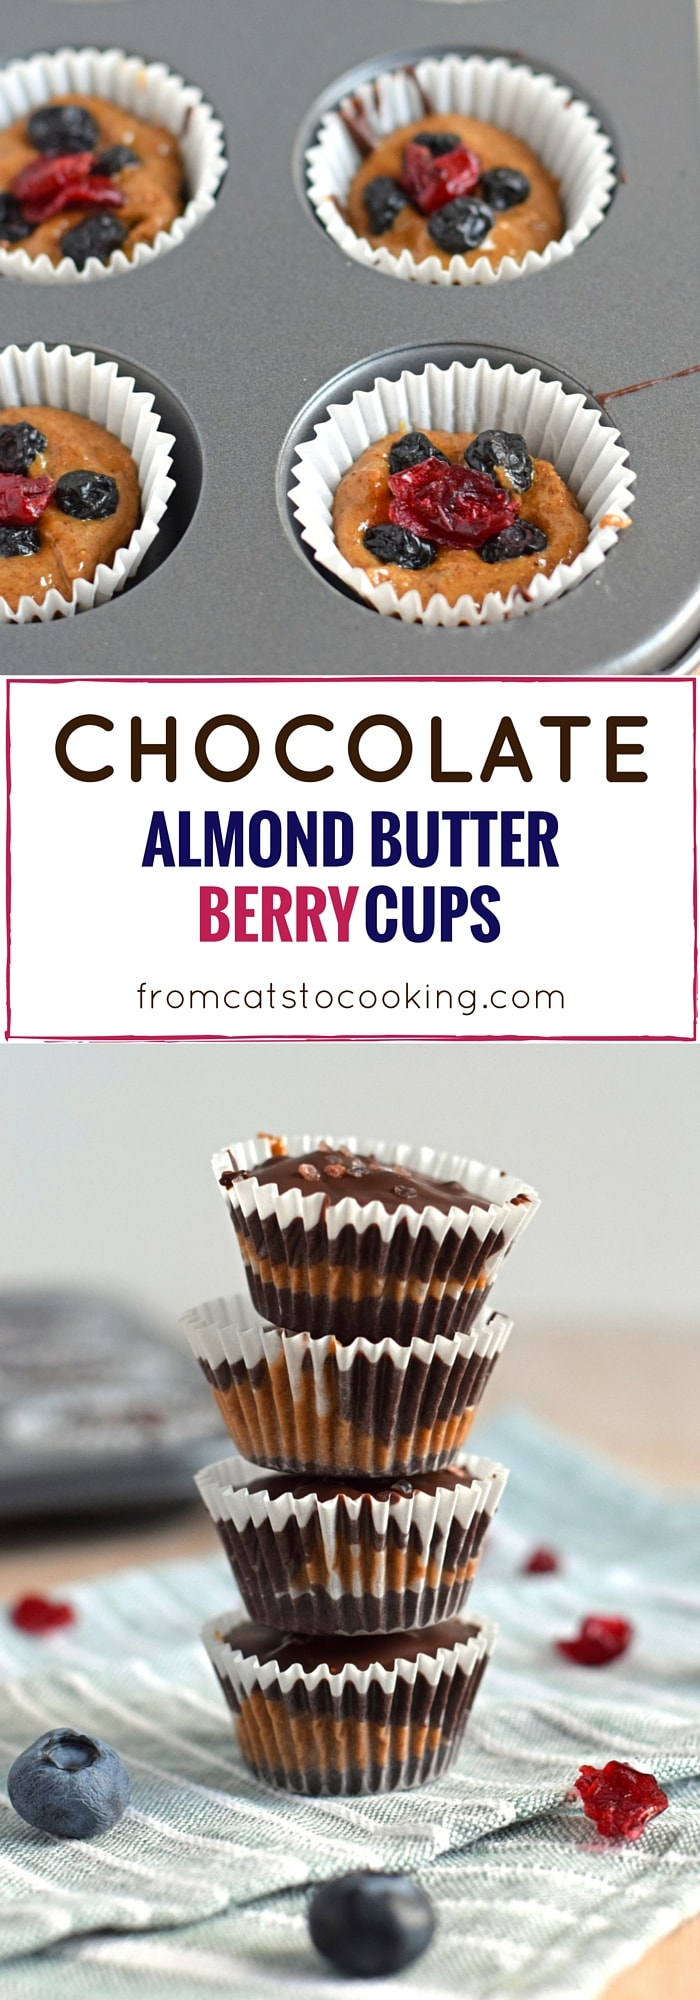 Chocolate Almond Butter Berry Cups topped with sea salt - no added sugar, no bake, dairy free, gluten free, paleo, raw, vegan, vegetarian | isabeleats.com